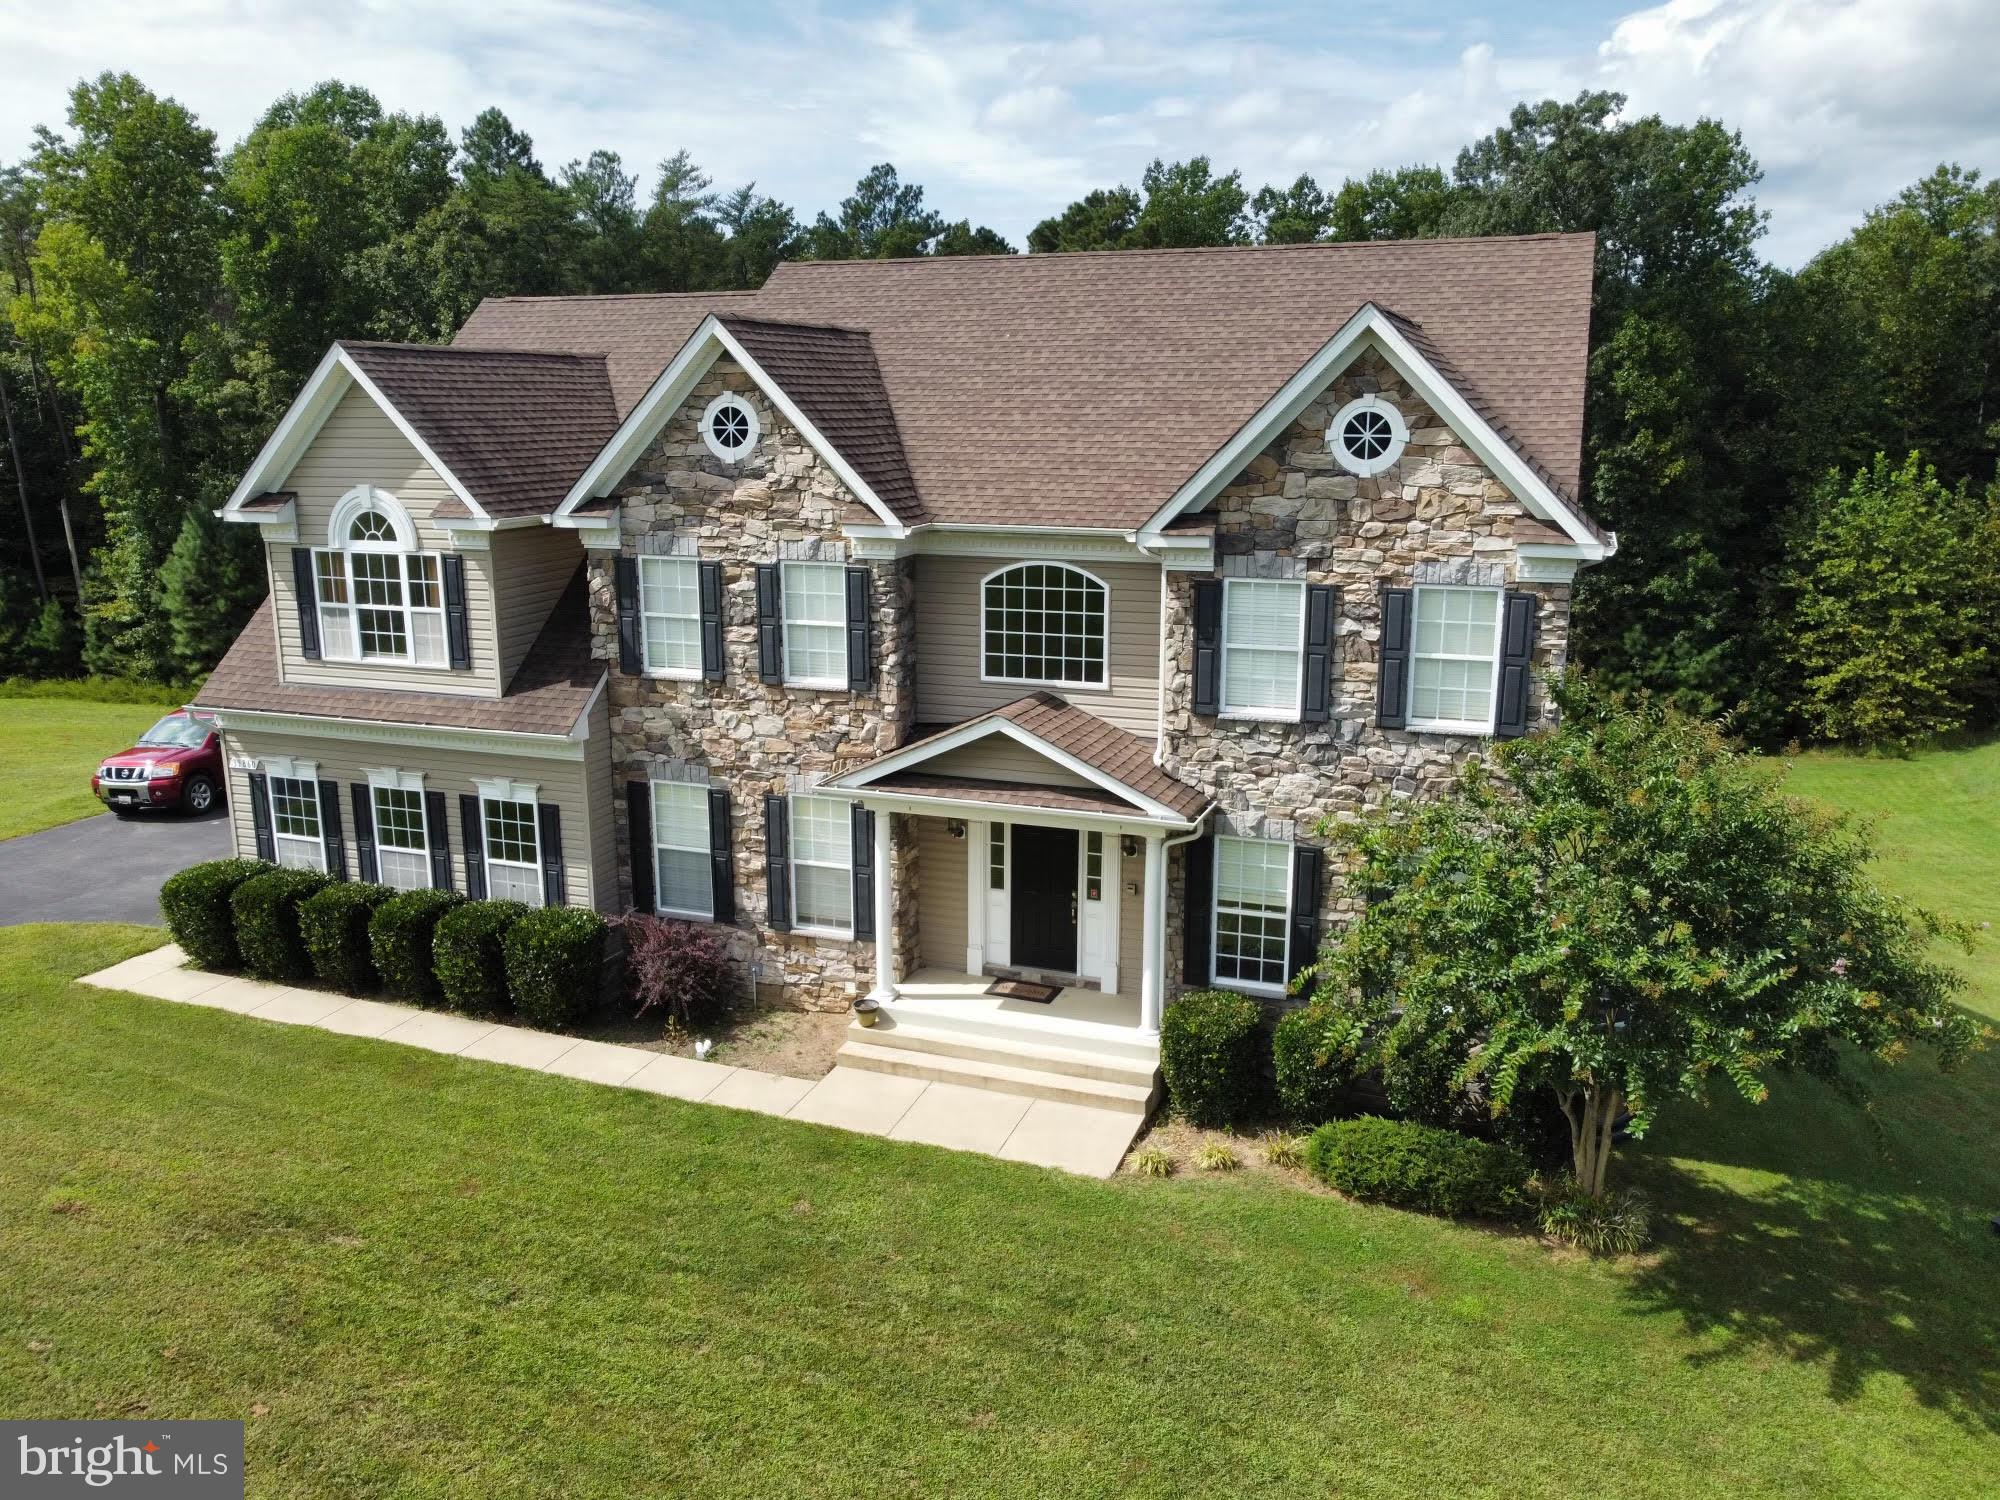 Your dream home awaits in the sprawling, picturesque neighborhood of Ben Oaks in Mechanicsville. Situated on over two gorgeous acres, this stone façade colonial will amaze and excite you.  The home features over 6,000 square feet of many builder upgrades and enhanced finishes.  You will love the gleaming hardwood floors throughout. You will find a total of 4 large, airy bedrooms and 3 and a half baths.  Upon stepping into this warm and inviting home, you will feel the sense of stately elegance in the bright, open foyer. Turn to your right and enter the beautiful, bumped-out living and dining room spaces.  On your left, you will notice the perfect space for a home office or additional sitting area.  Move through the foyer down the hallway to the vast gourmet kitchen featuring stainless steel appliances, two wall ovens, granite countertops, and a large island. Just off the kitchen is the sizable, extended morning room that pours in an abundance of natural light and provides plenty of additional space for seating and entertaining.  The open floor plan allows for a fluid space between the kitchen, morning room and family room area.  Gather around the cozy stone-front gas fireplace in the enormous family room.  Upstairs, the expansive owners suite boasts a separate sitting area, hardwood floors and more than enough space for your king sized bedroom set. The owners suite also includes a lovely breakfast bar with sink and refrigerator.  Dual walk-in closets provide plenty of storage space.  The ensuite bath offers dual vanities, a separate shower and soaking tub with jacuzzi and isolated toilet.  This home is so expansive, you will appreciate the whole-home intercom system with built-in speakers.  Explore the gigantic finished basement that includes a theatre room with projector system hook-up.  Also find a full bath.  This basement is the entertainer's dream.  The basement is plumbed for a bar with sink.  The storage possibilities are endless.  An oversized two-car garage